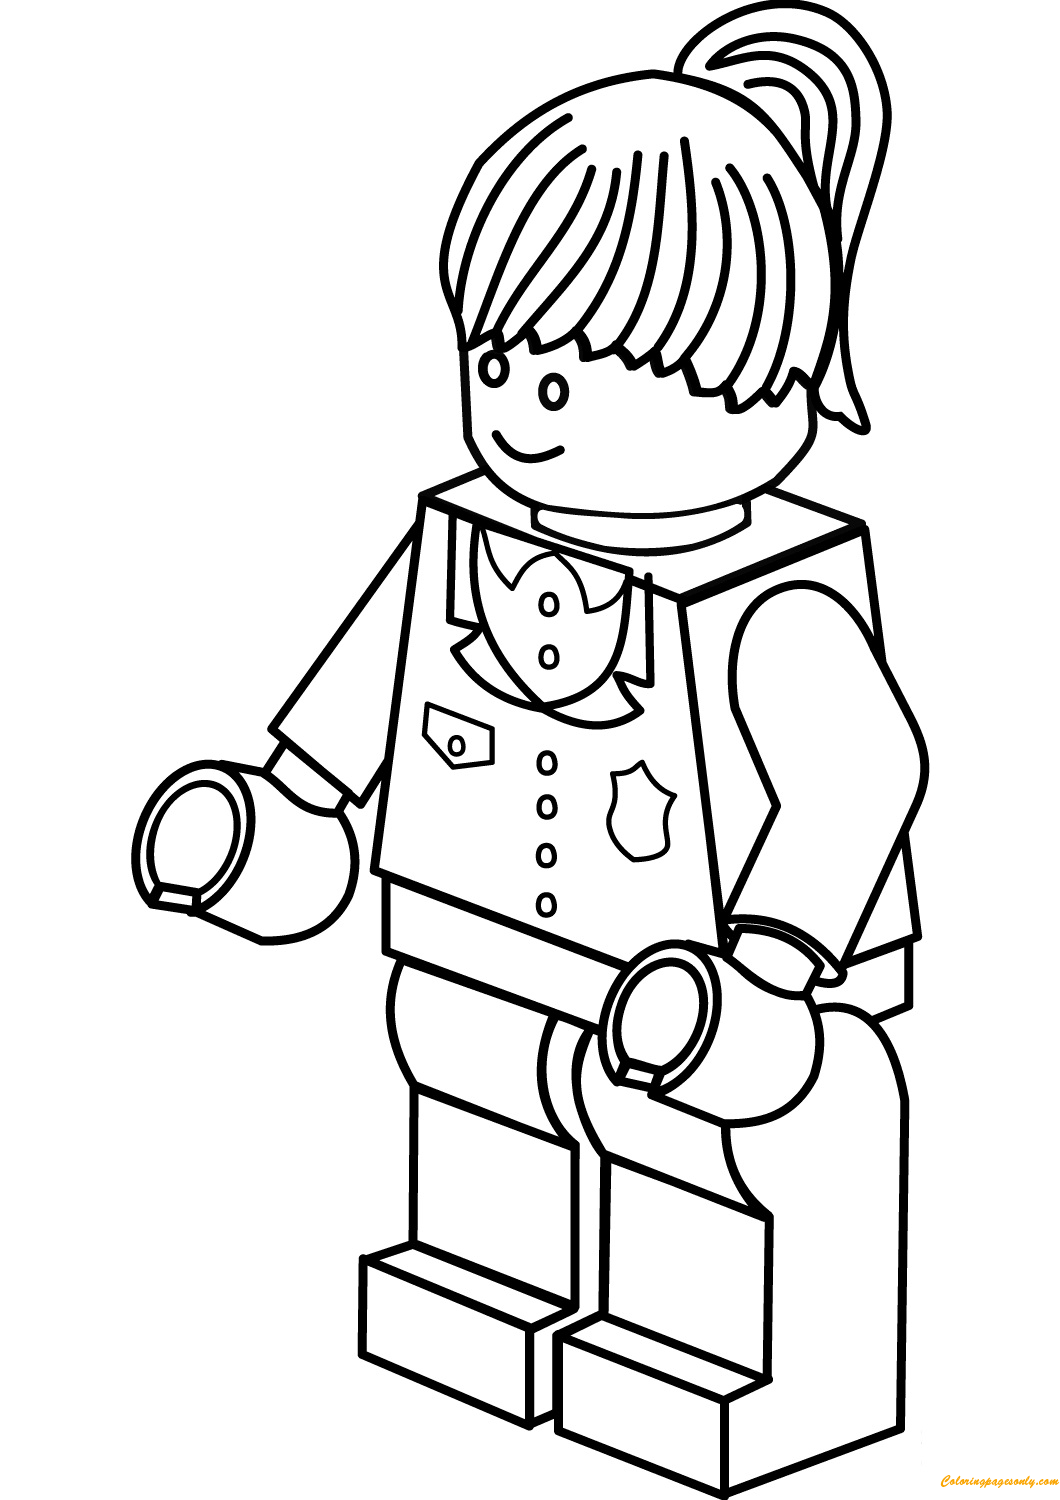 Lego City Police Woman Coloring Page Free Coloring Pages Online